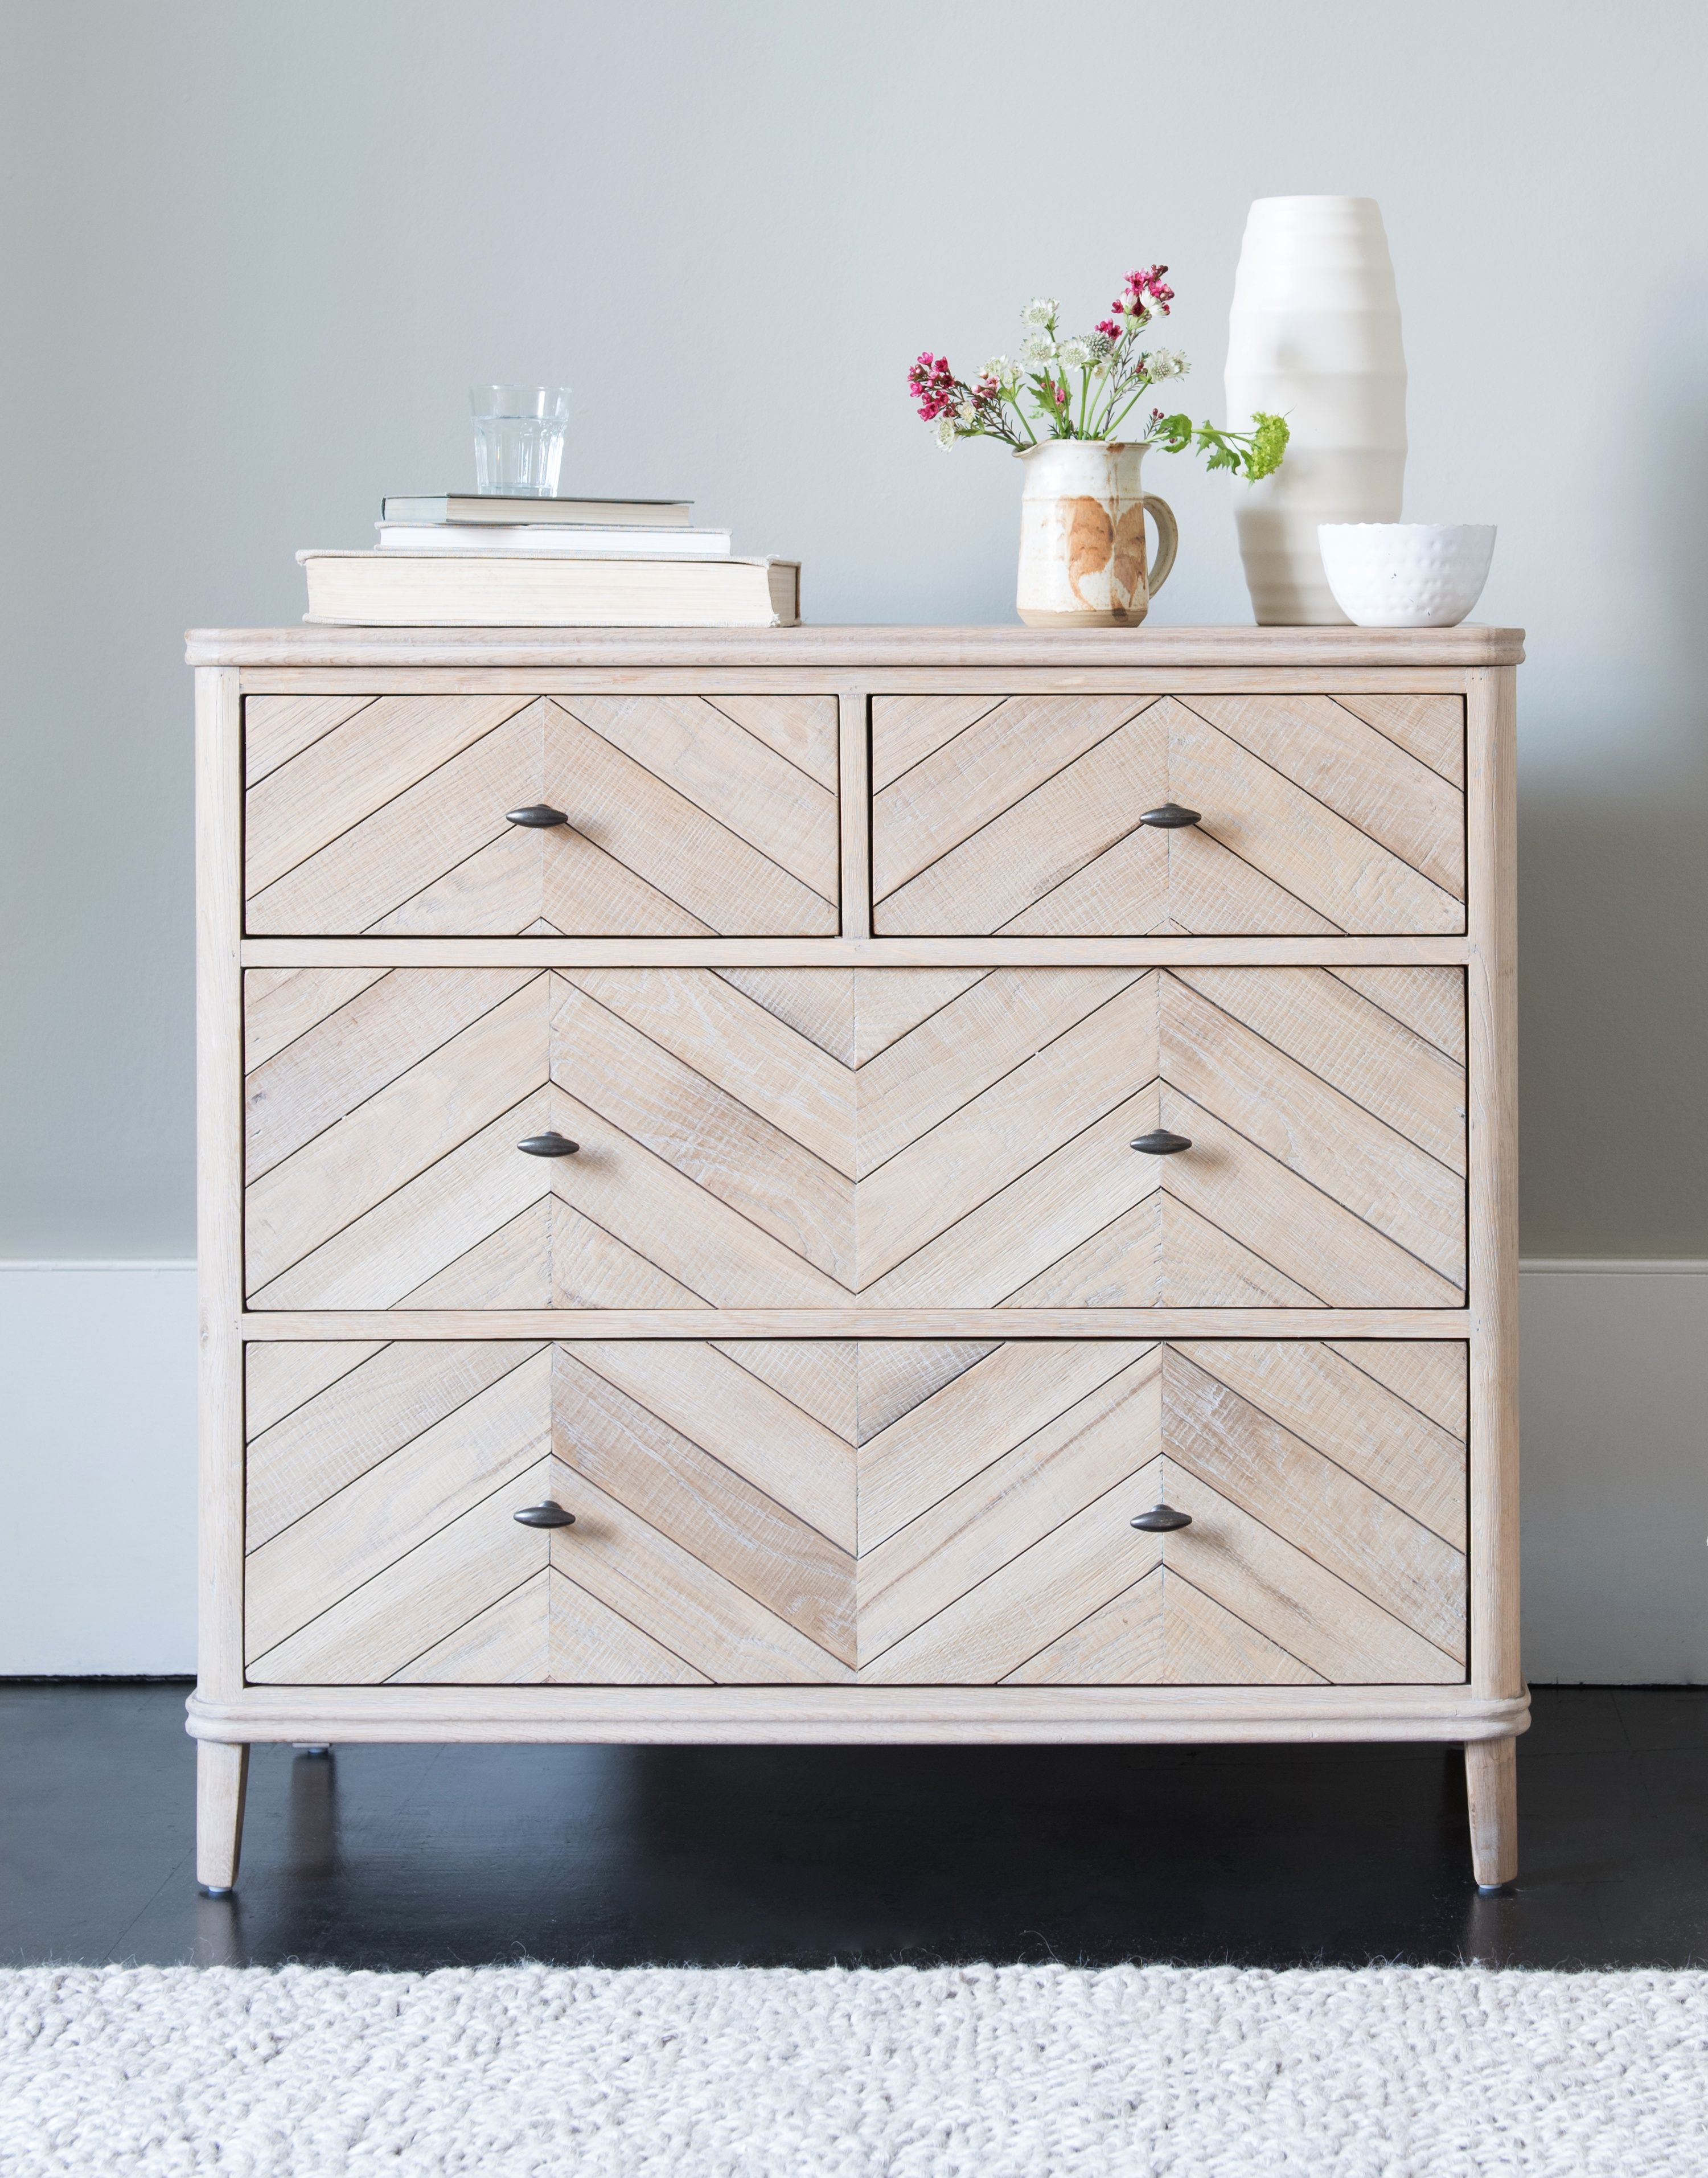 10d060bf66 Young Flapper | Boudoir | Pinterest | Bedroom, Chest of drawers and ...